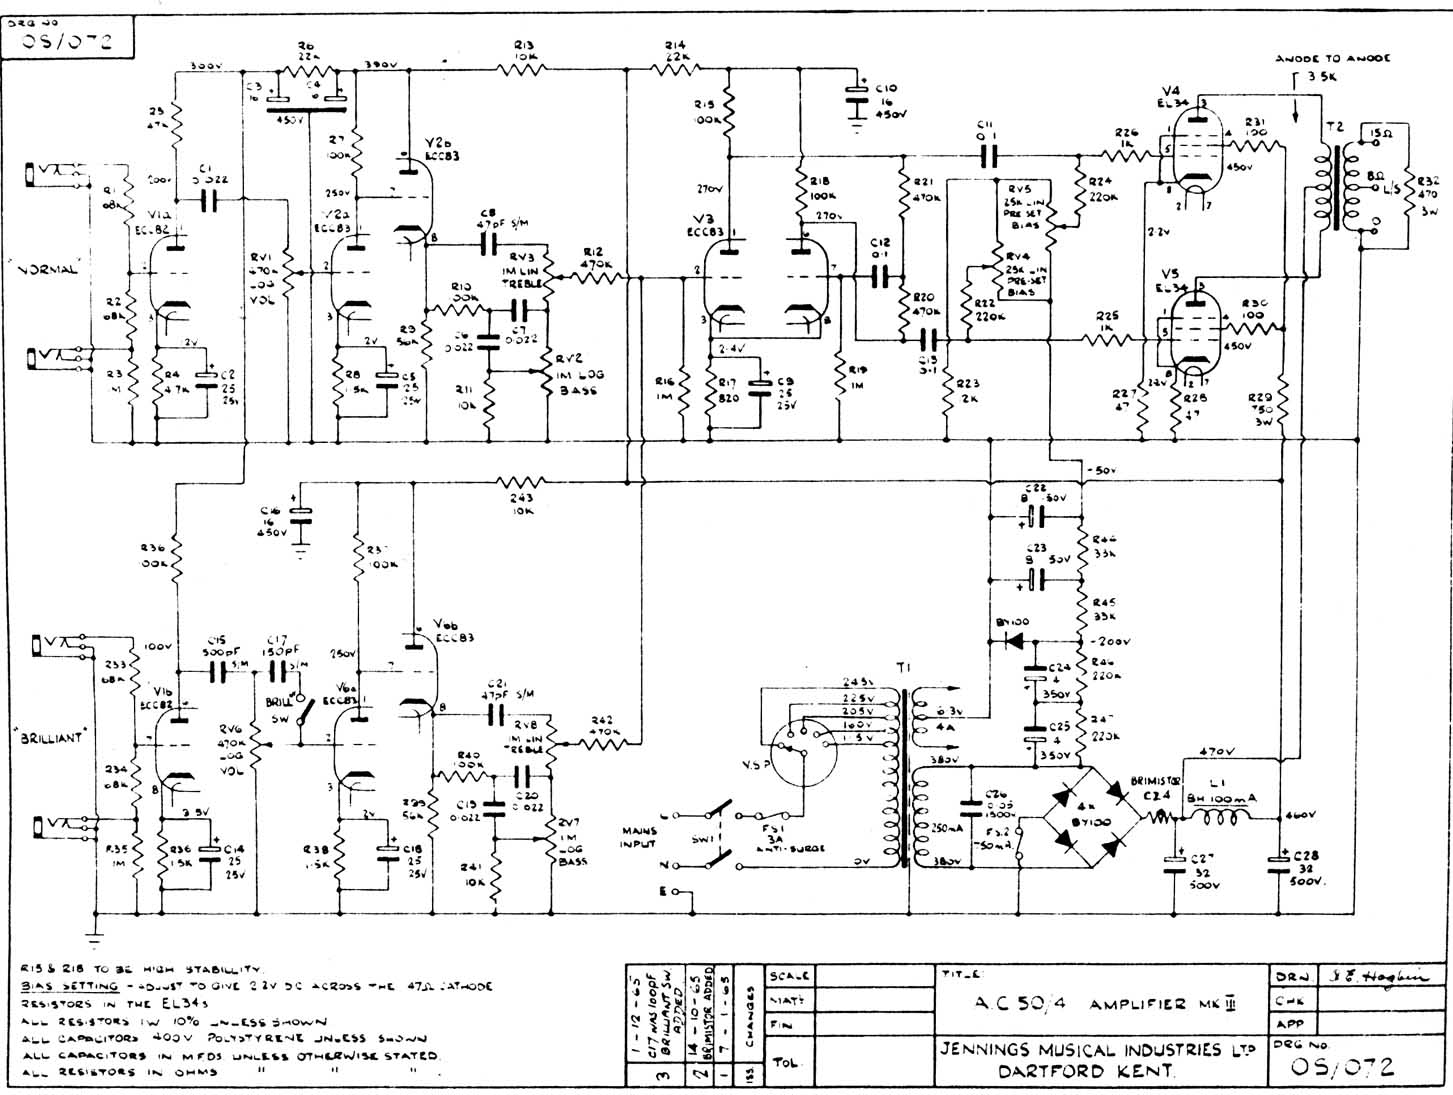 Vox Amp Schematic Wiring Diagram Sample Carvin Schematics Ac50 Amplifier Page Ac30 Around 5000 Amps Were Built To This Circuit